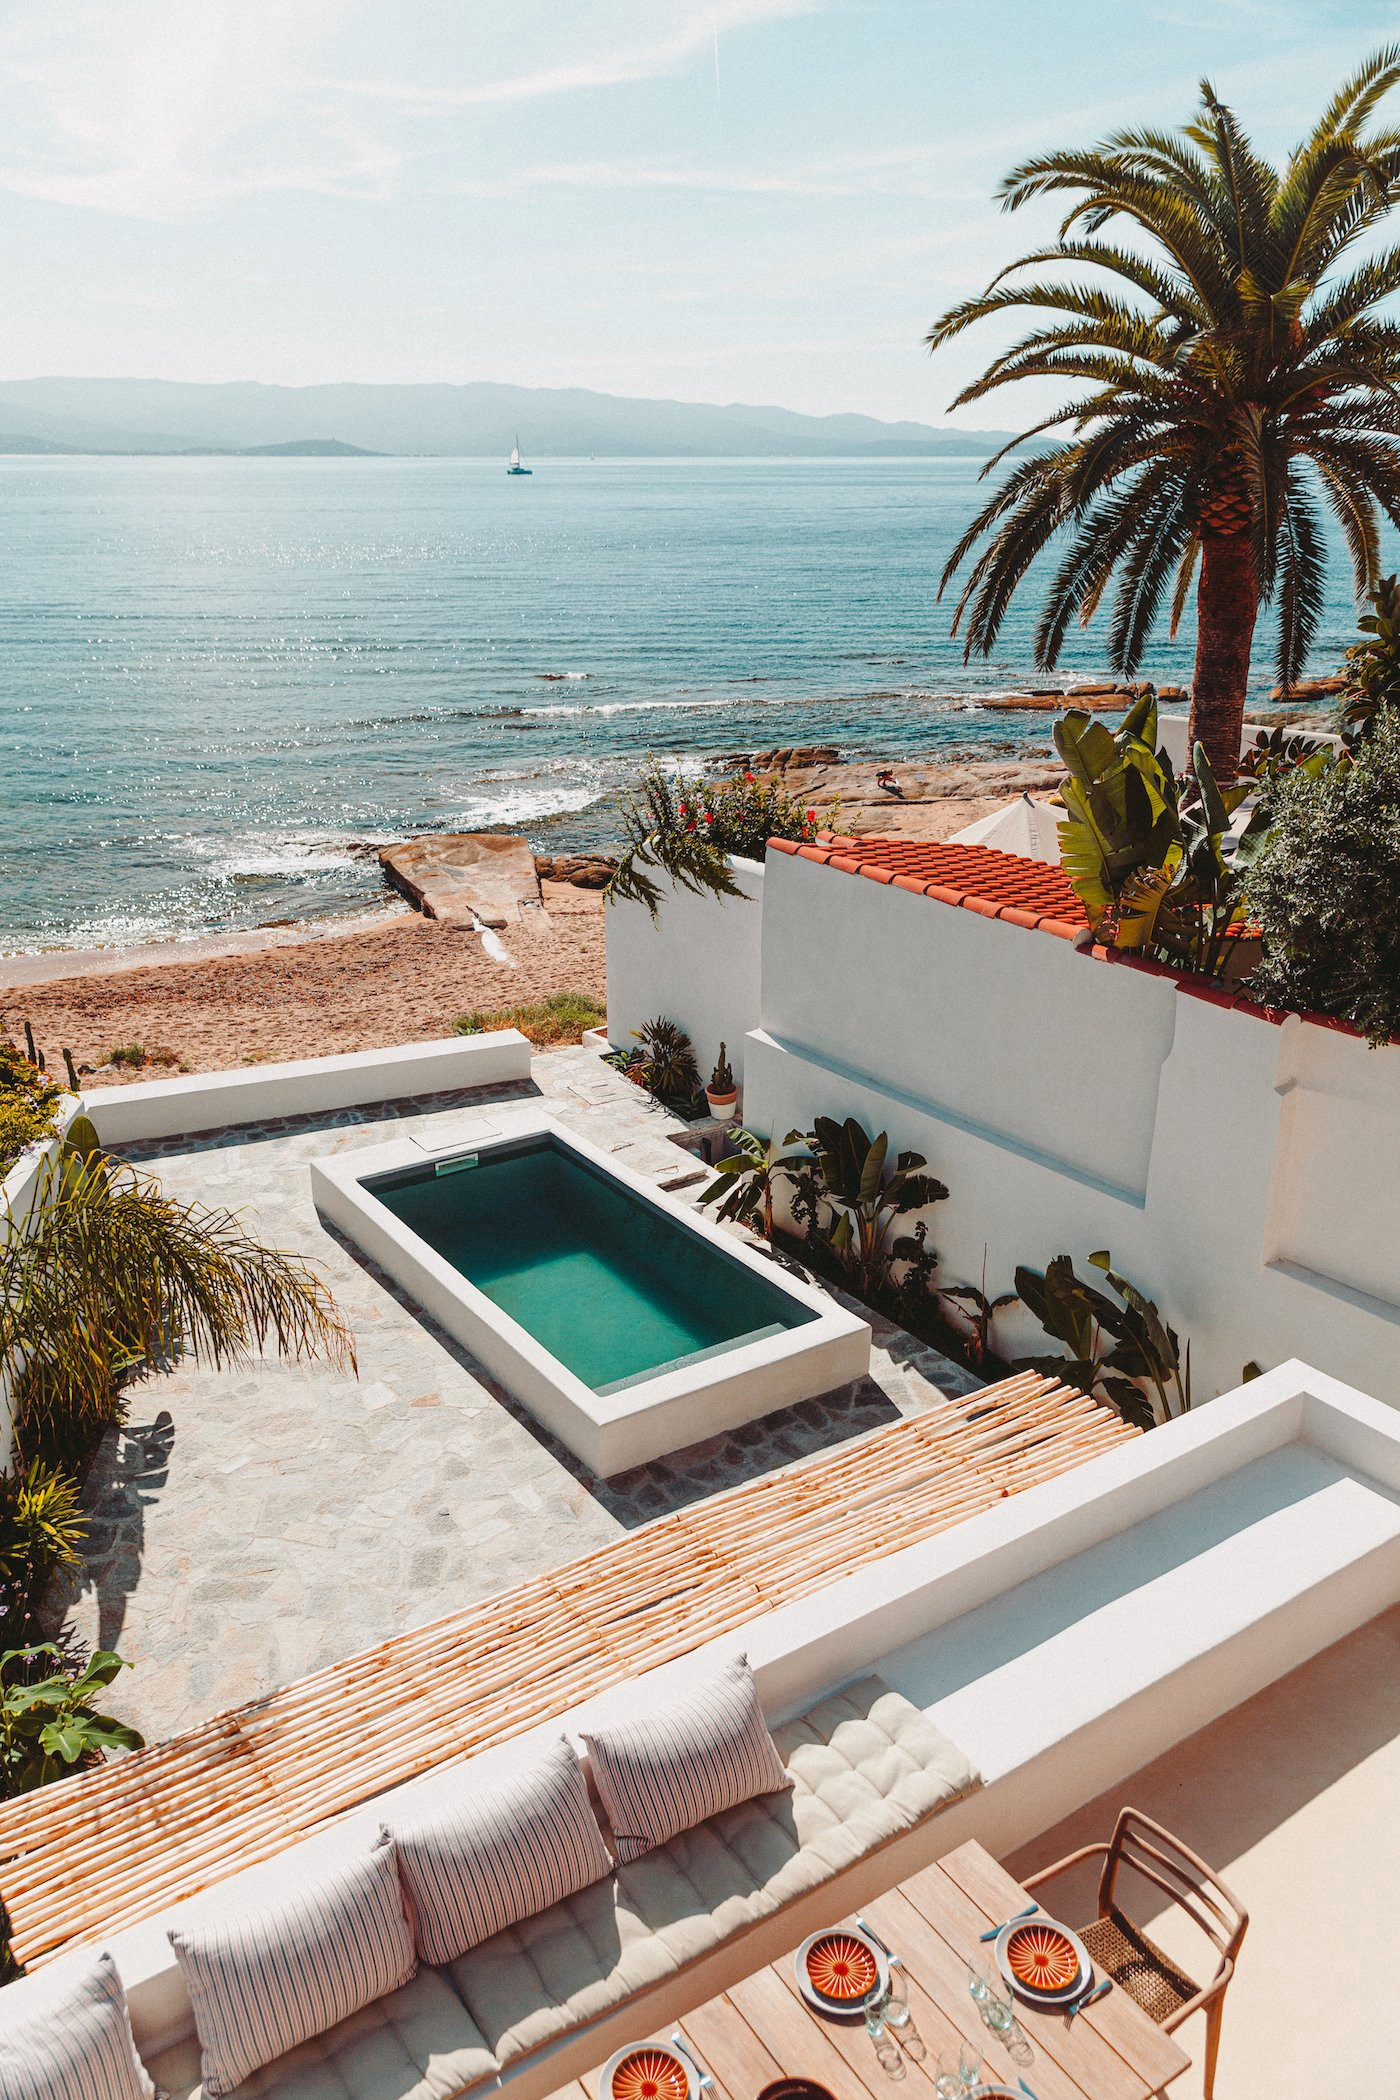 The pool, surrounded by stones, palms, and white walls, sits just meters from the beach. White-painted cinder blocks and flowering trees line a stone side-pathway. (Photo: Thibaut Dini, Life's A Beach)